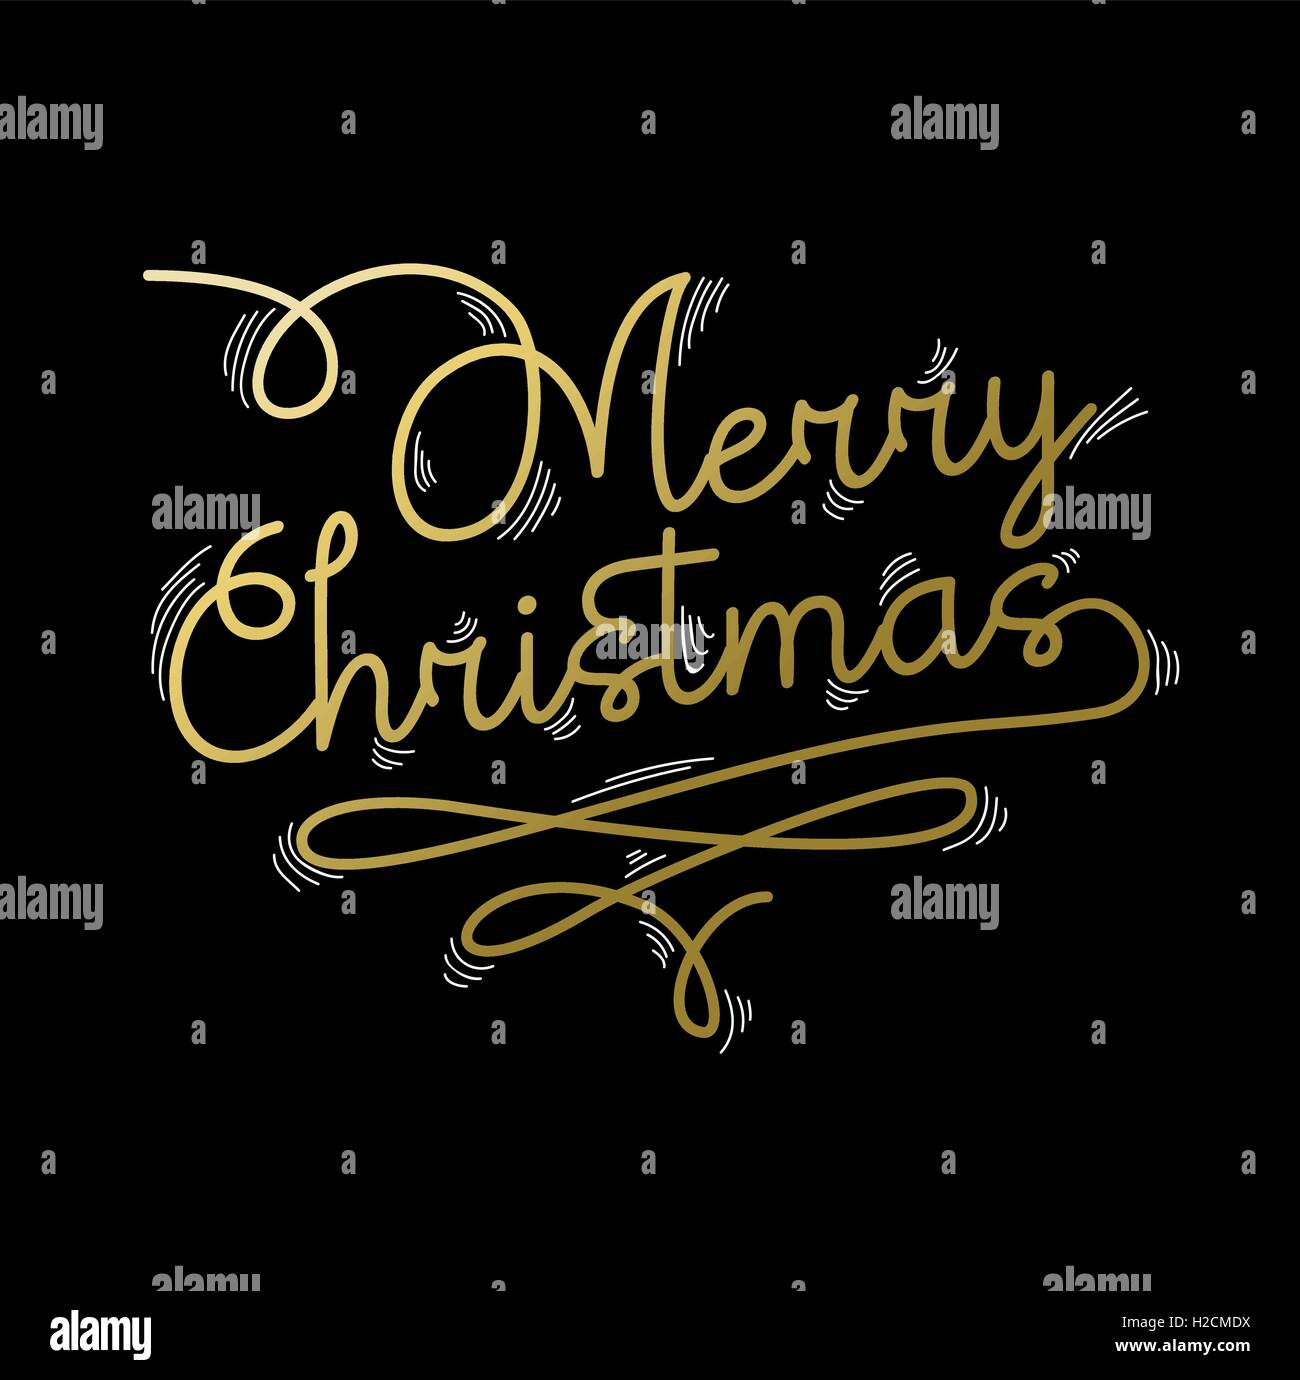 Merry christmas gold lettering design. Xmas text quote for poster or holiday greeting card. EPS10 vector. - Stock Image